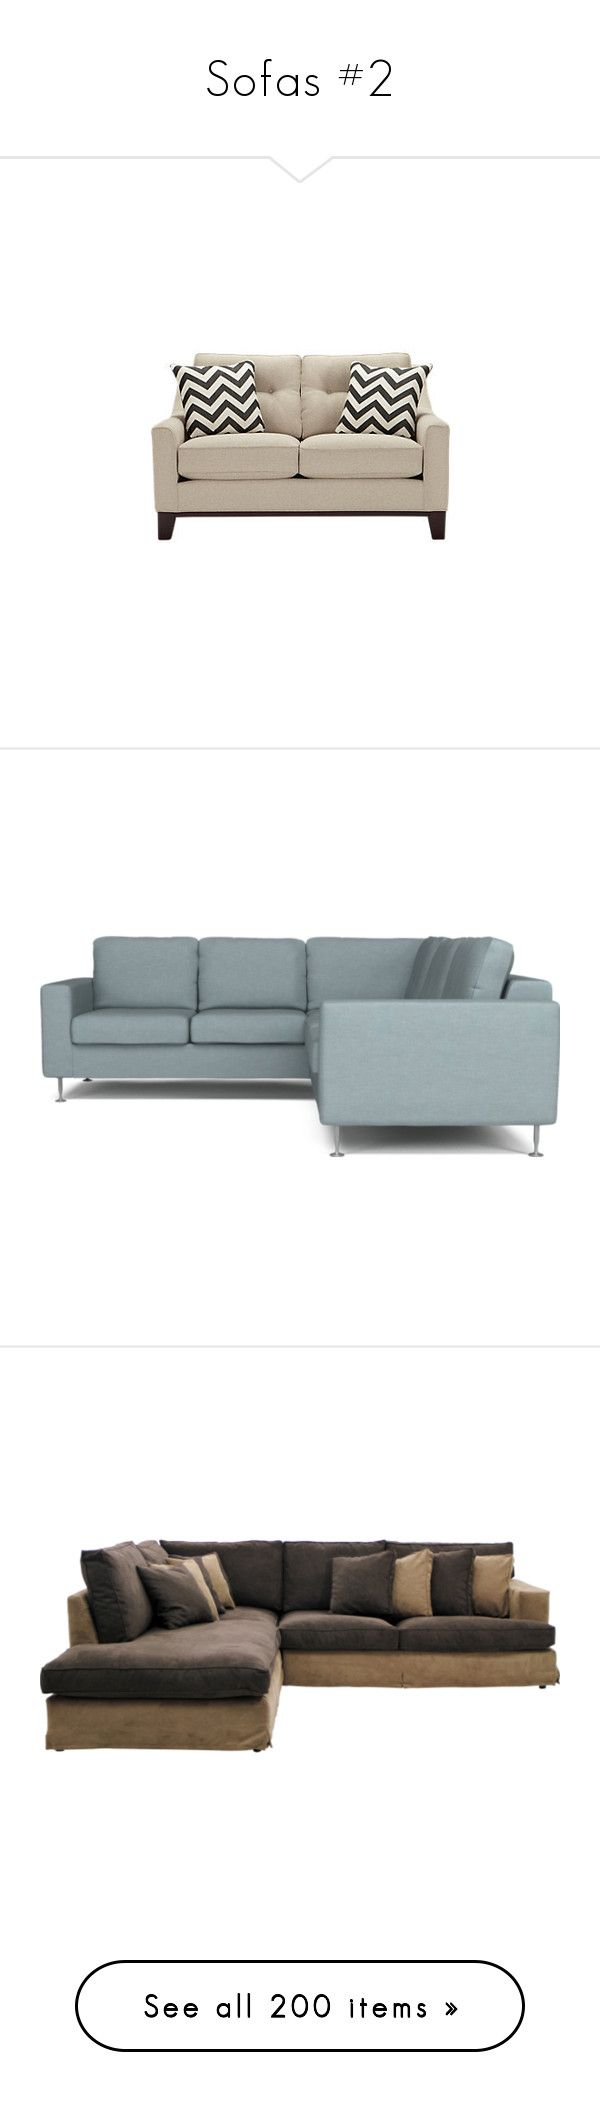 """""""Sofas #2"""" by sally-simpson ❤ liked on Polyvore featuring home, furniture, sofas, tufted love seat, tufted loveseat, tufted sofa, tufted furniture, power reclining loveseat, sofa and 5 seater sofa"""